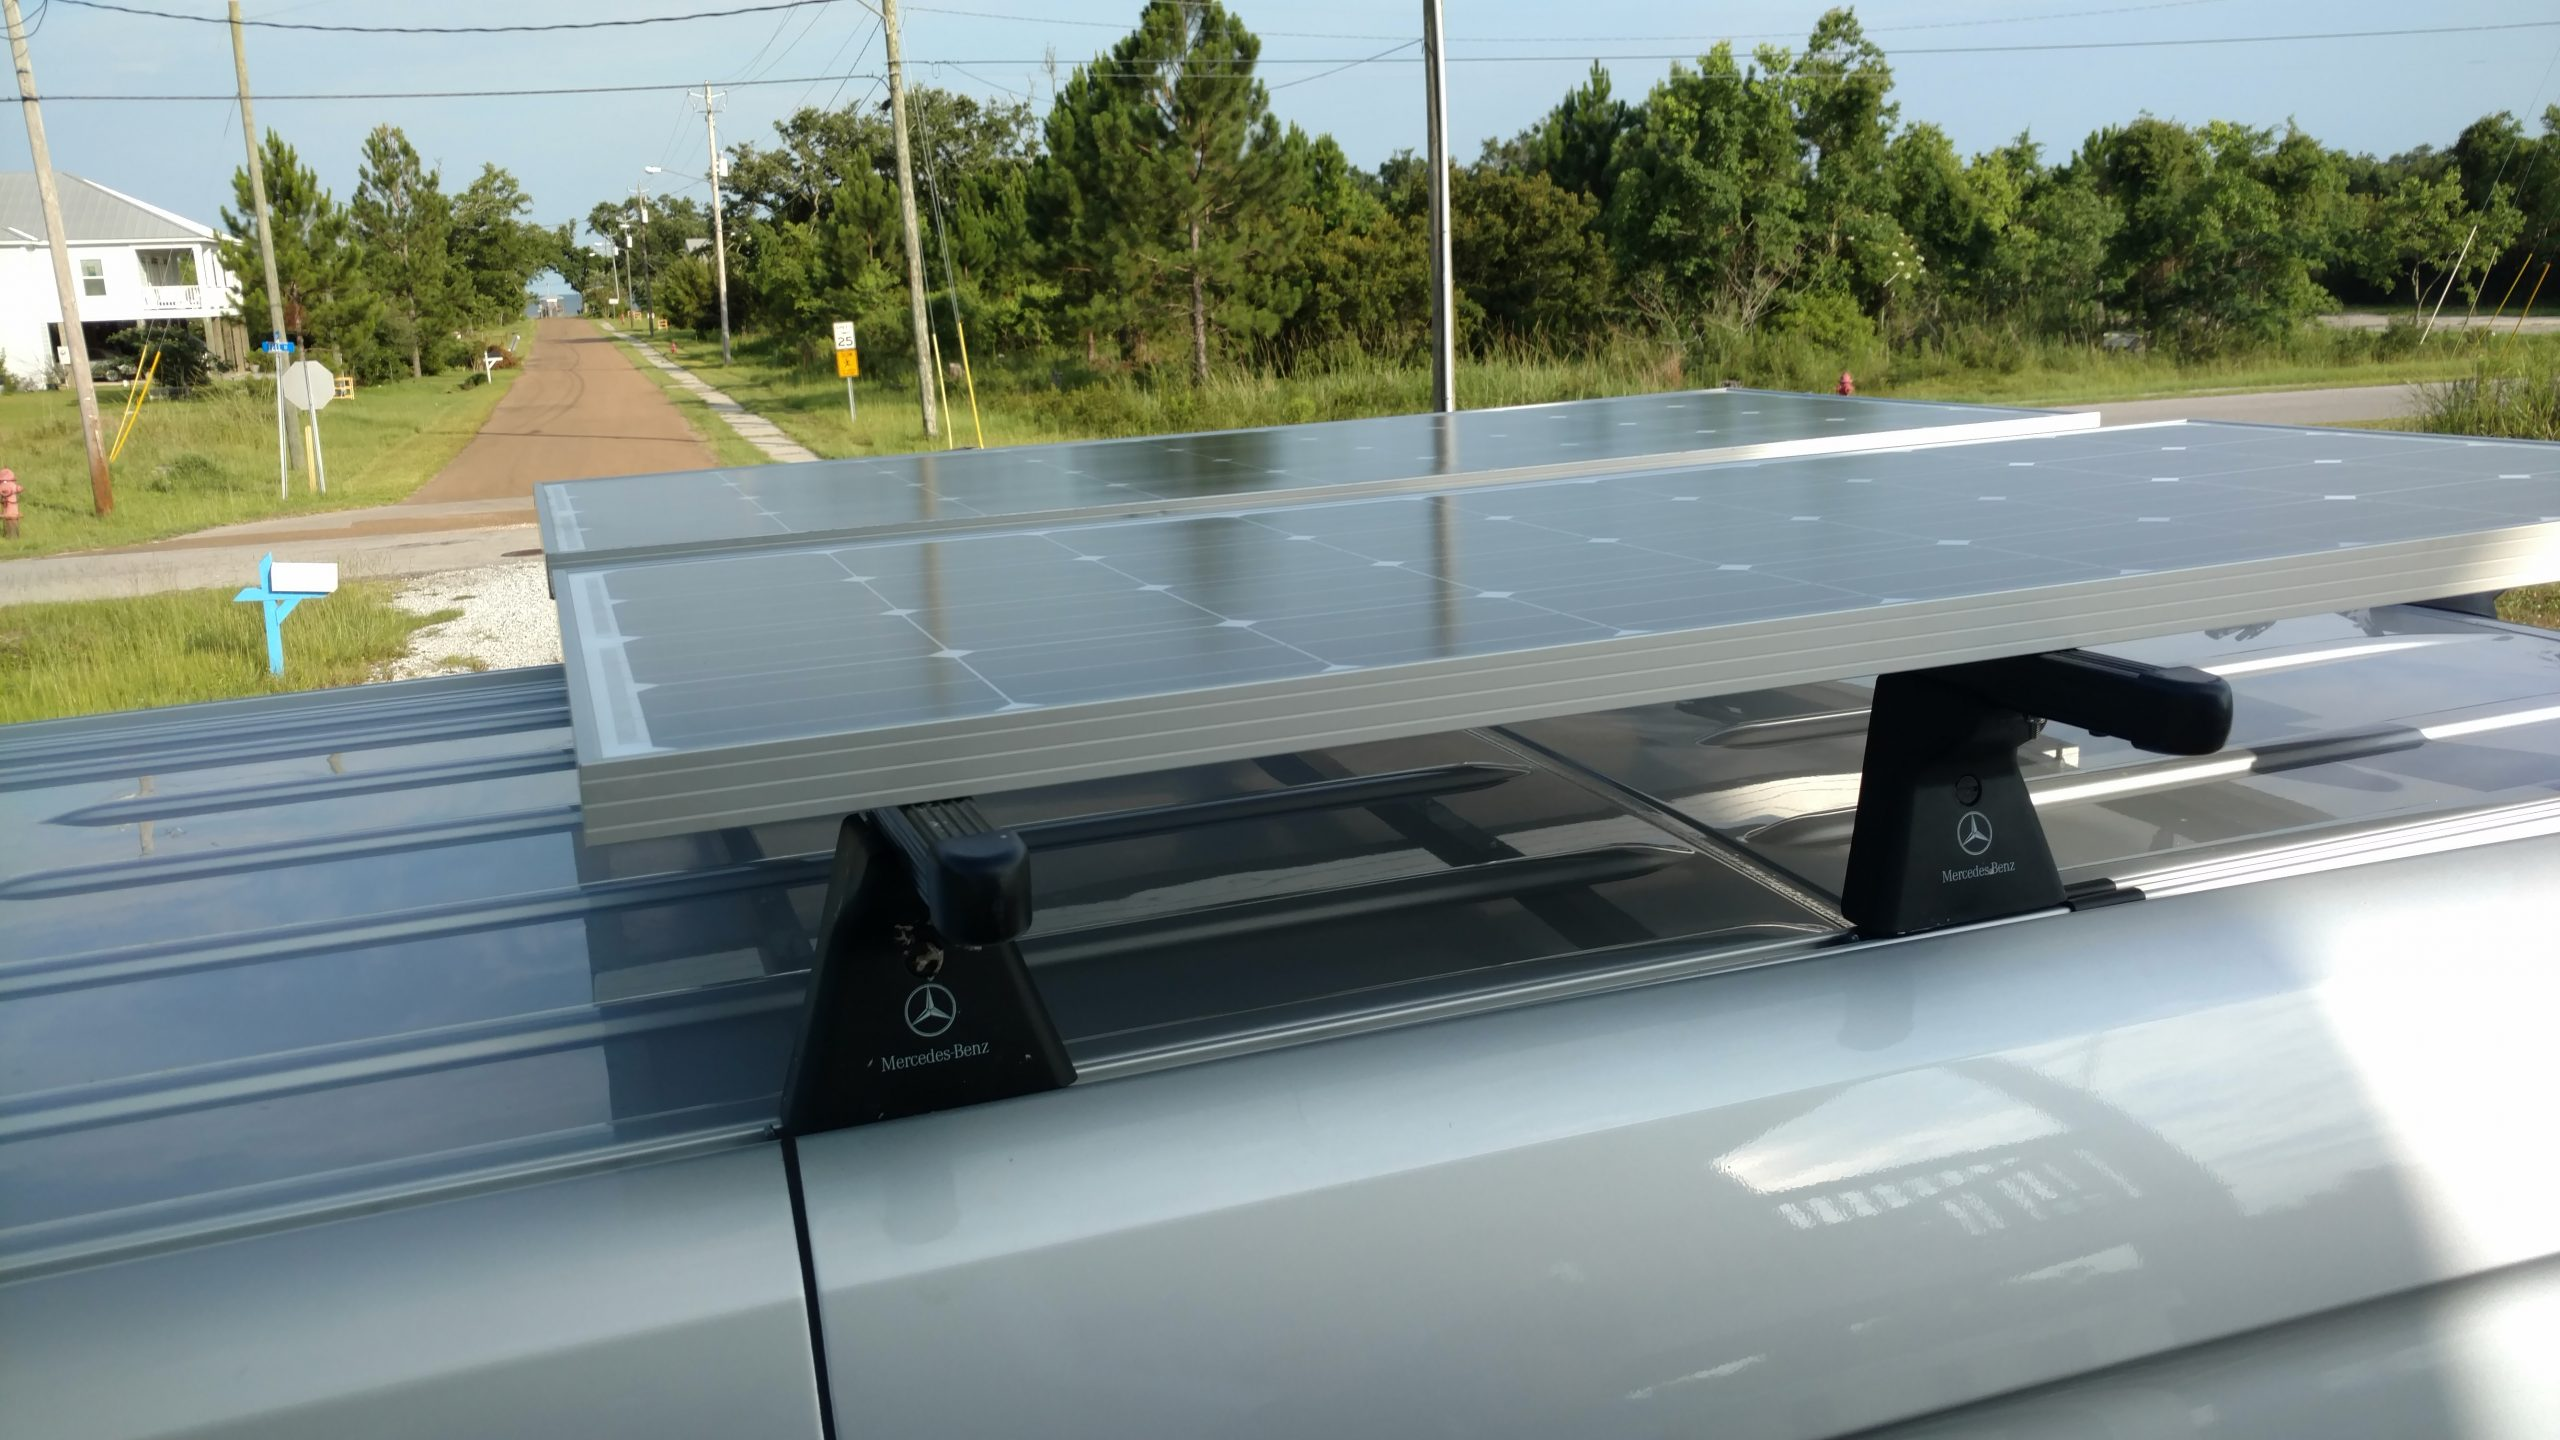 Solar panels on a roof rack can be cooler since there is 4 inches between roof and panel.